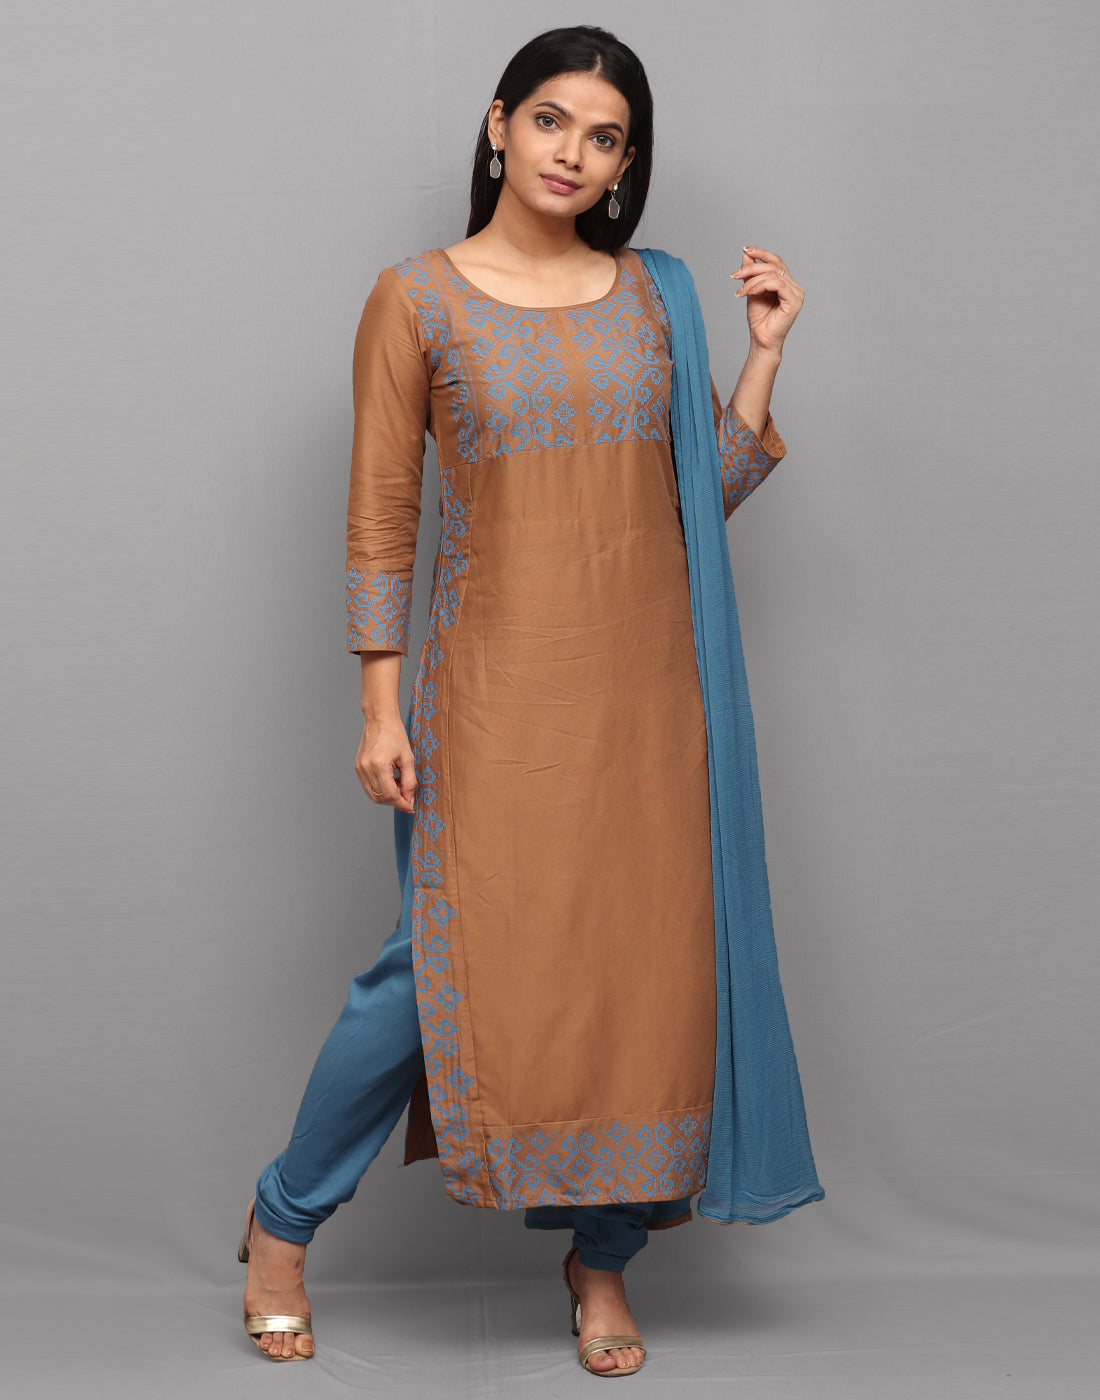 Brown 'n' Blue Printed Rayon Salwar Suit